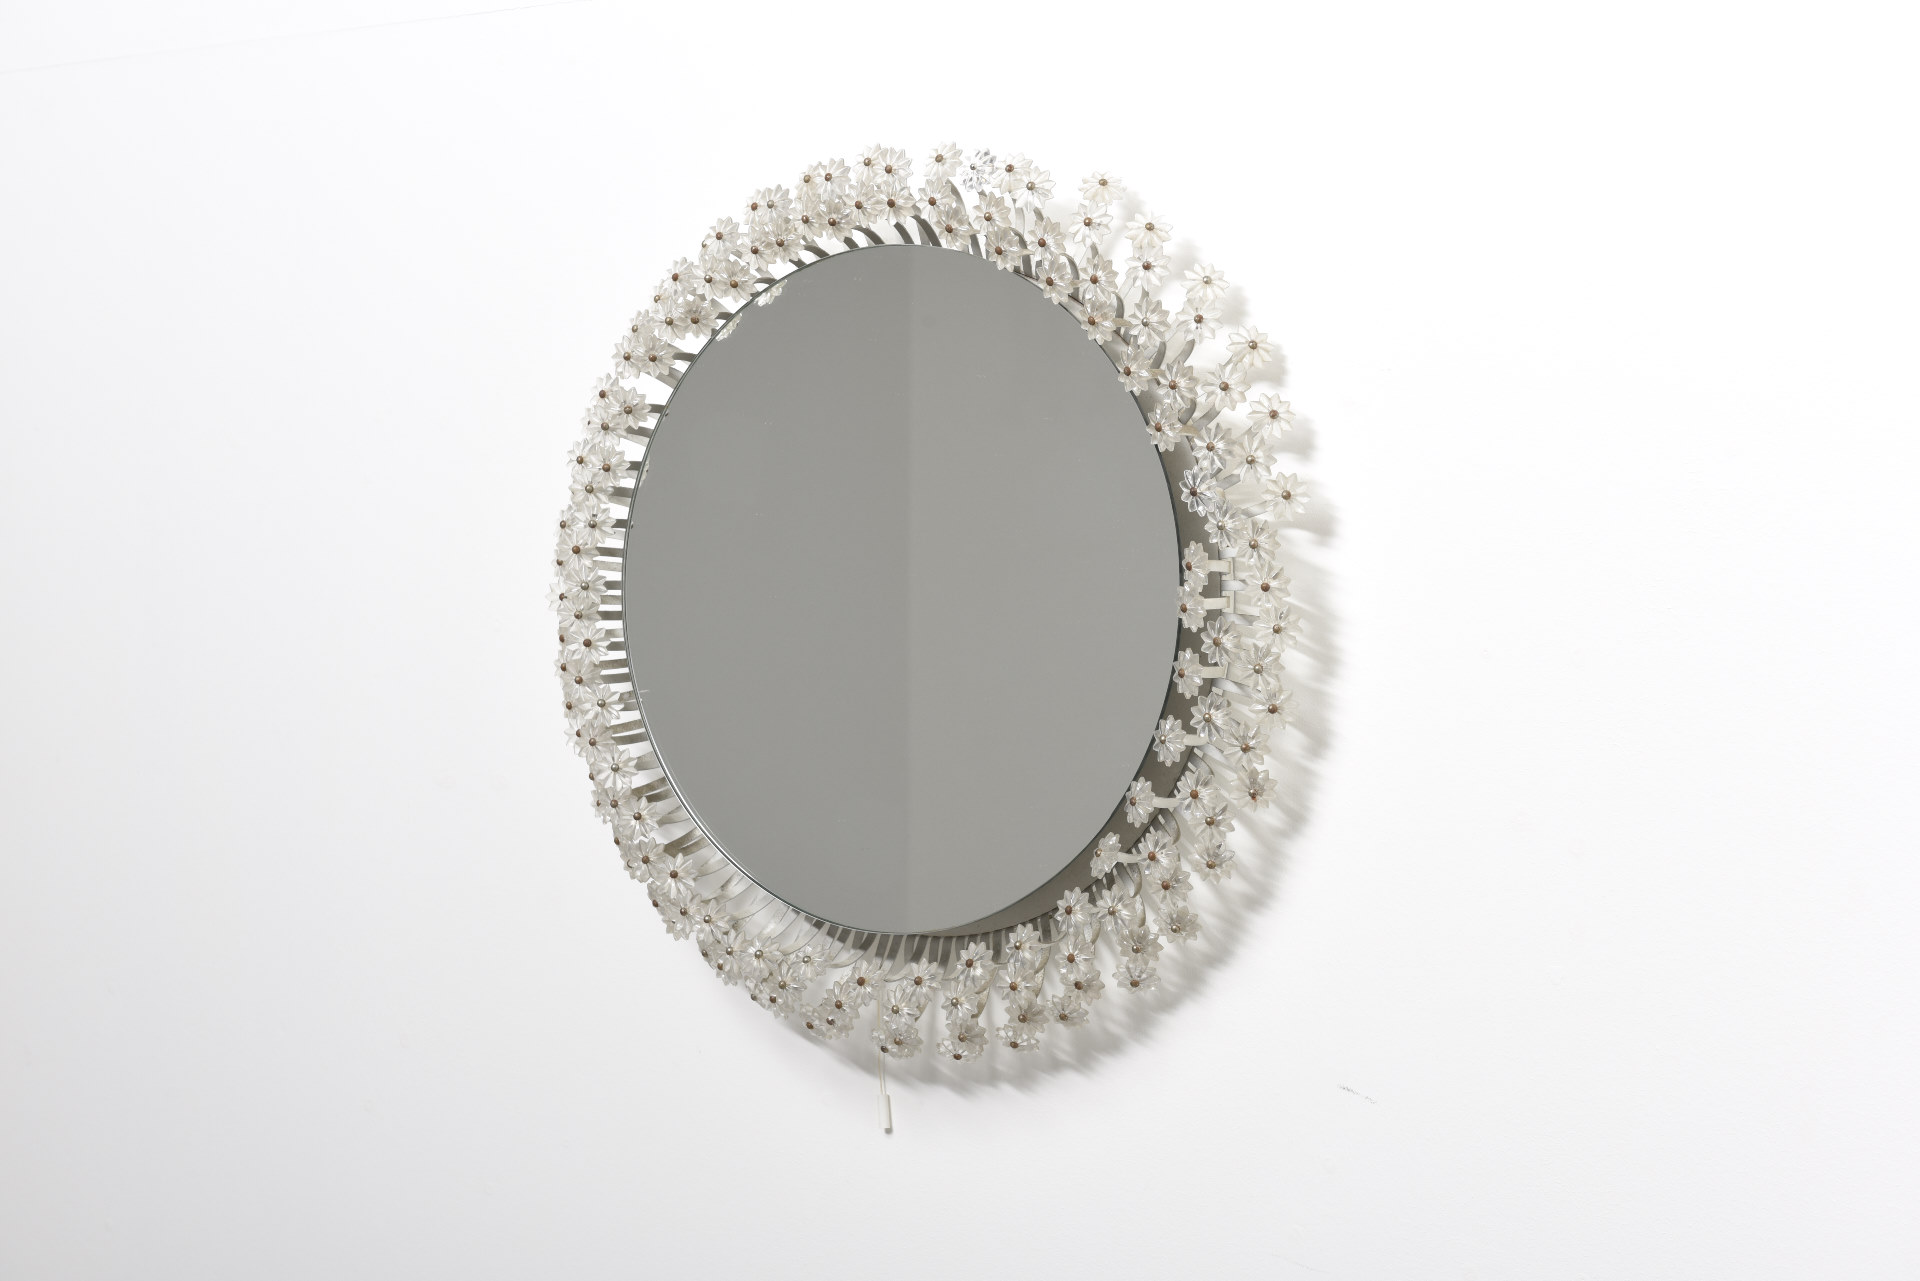 Flower Mirror With Backlight Emil Stejnar Archive Modest Furniture